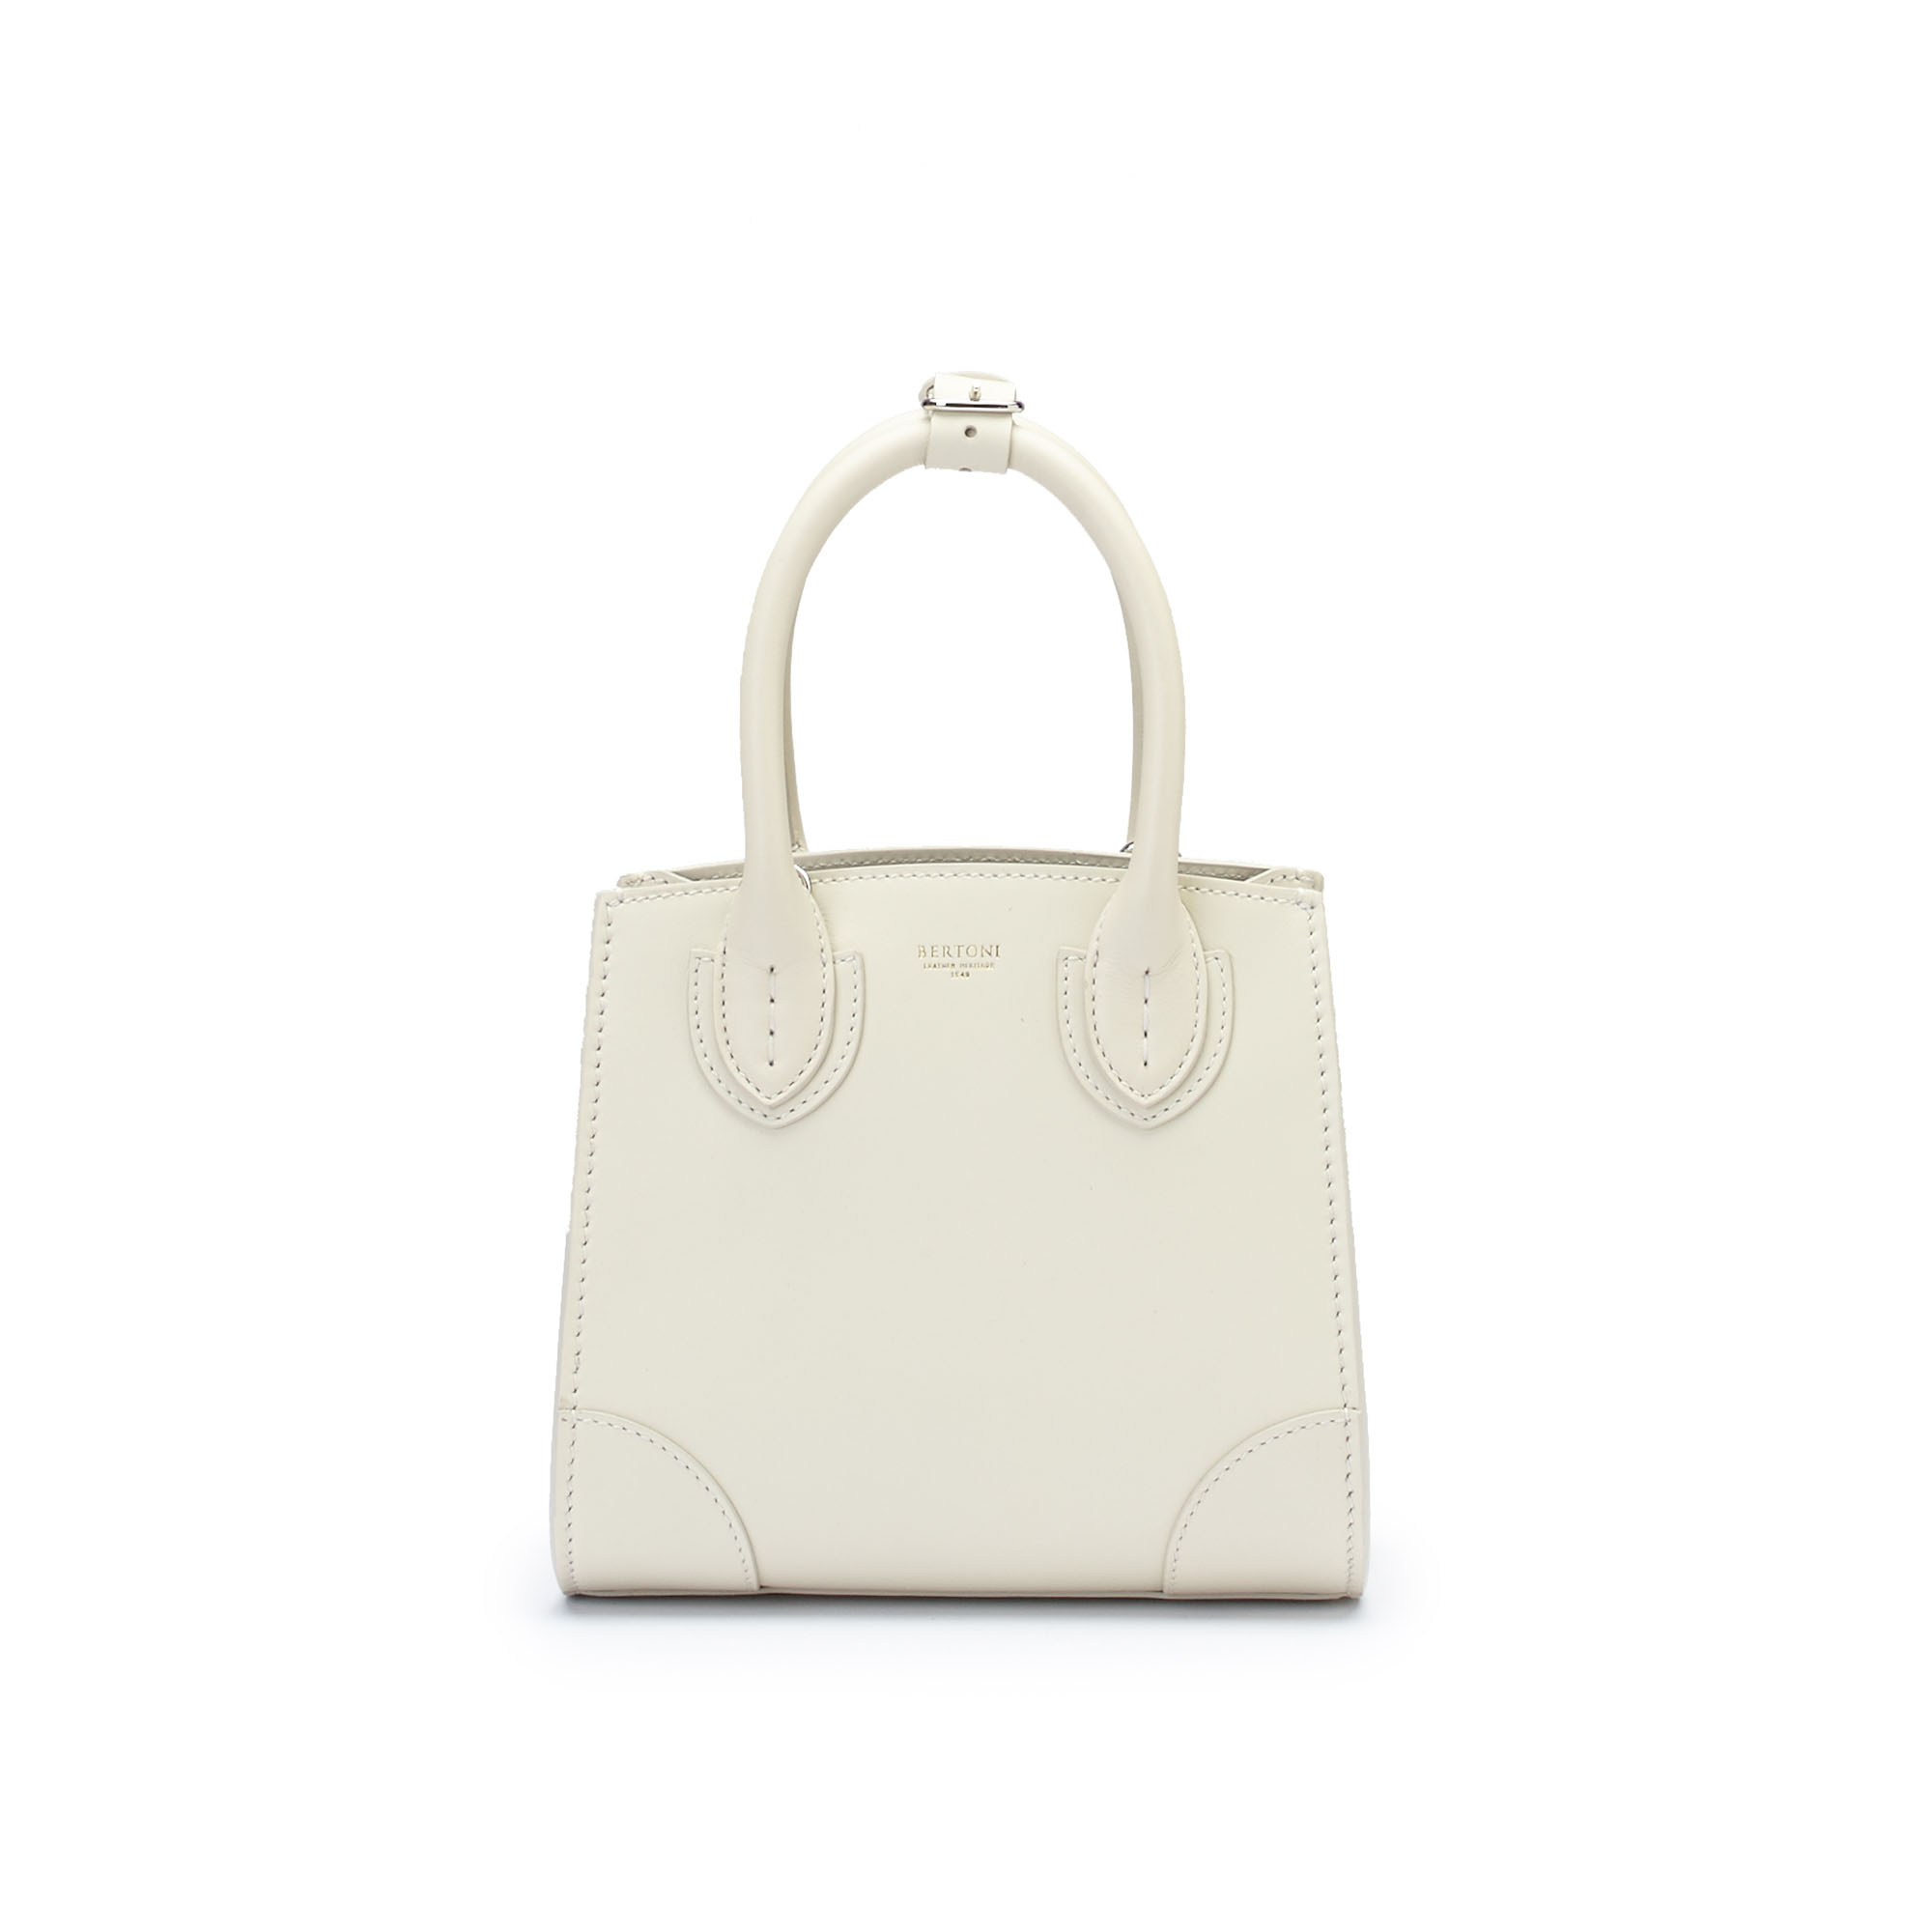 The ivory french calf Darcy bag by Bertoni 1949 01